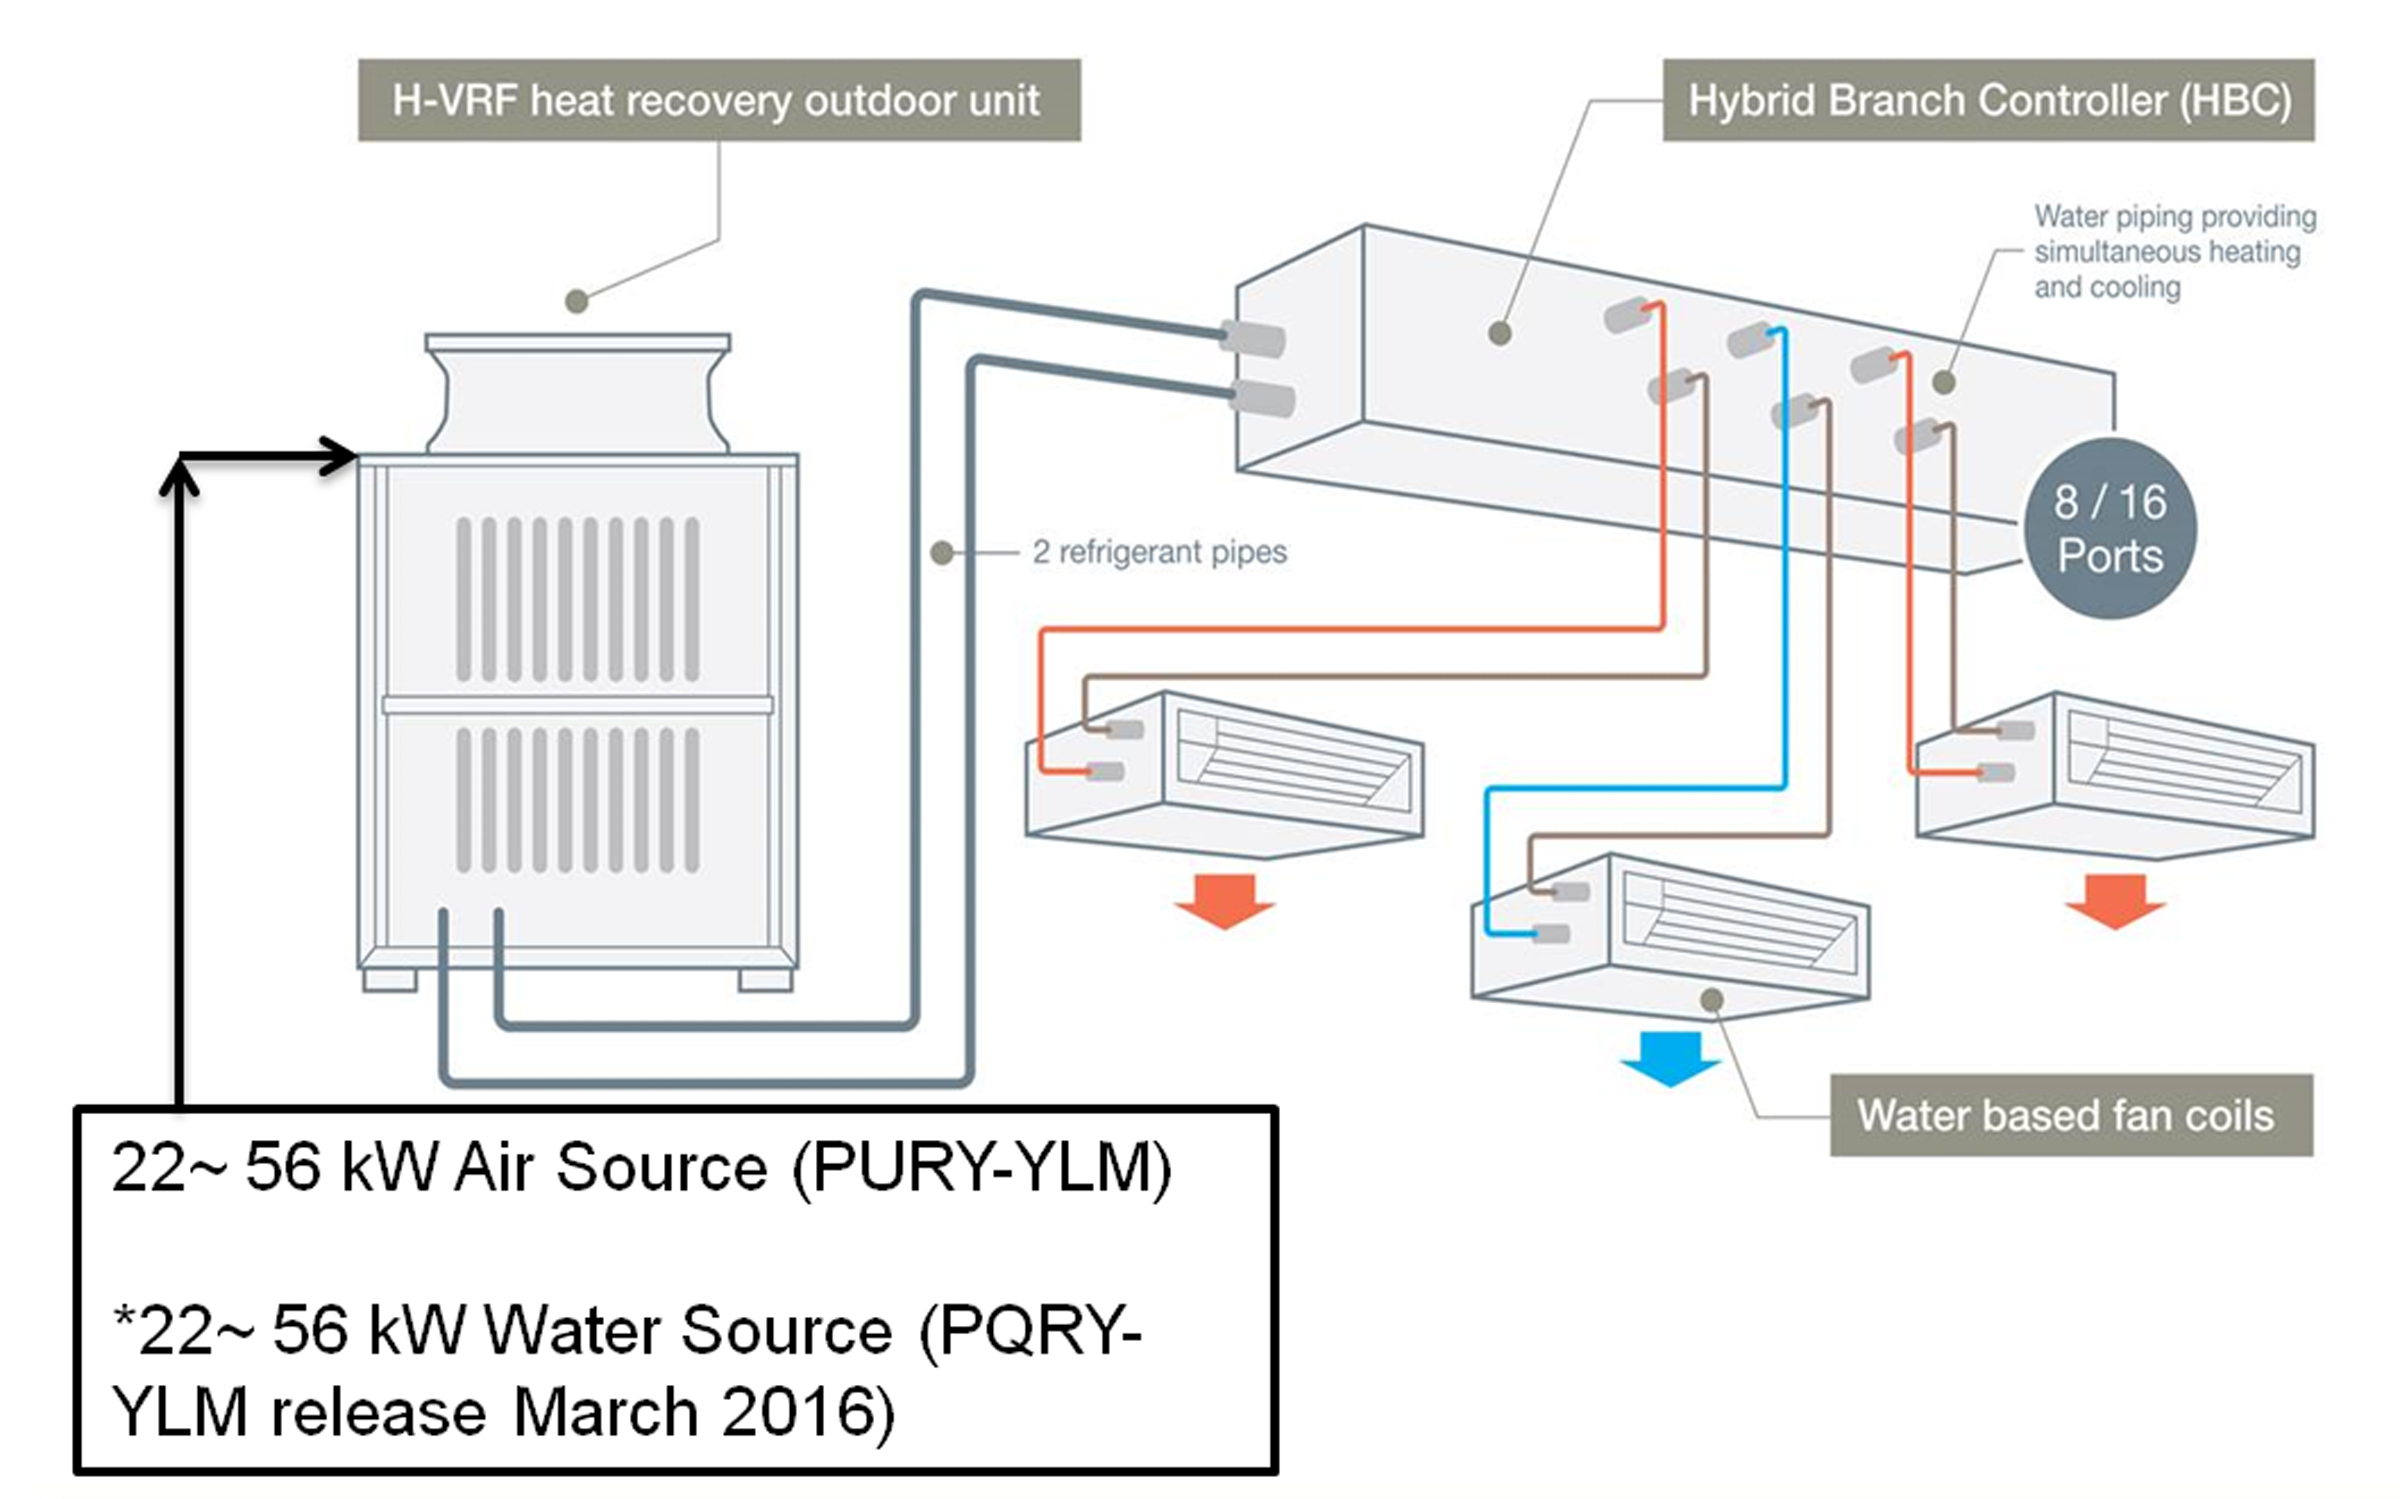 Mitsubishi Vrf Wiring Diagram Vrf System Discontinued Models Easy Installation J The World S Only Hybrid Vrf System Mitsubishi Electric Mitsubishi Vrf Control With Smart Stat 75f Coolmaster 8000mh For Mitsubishi Heavy